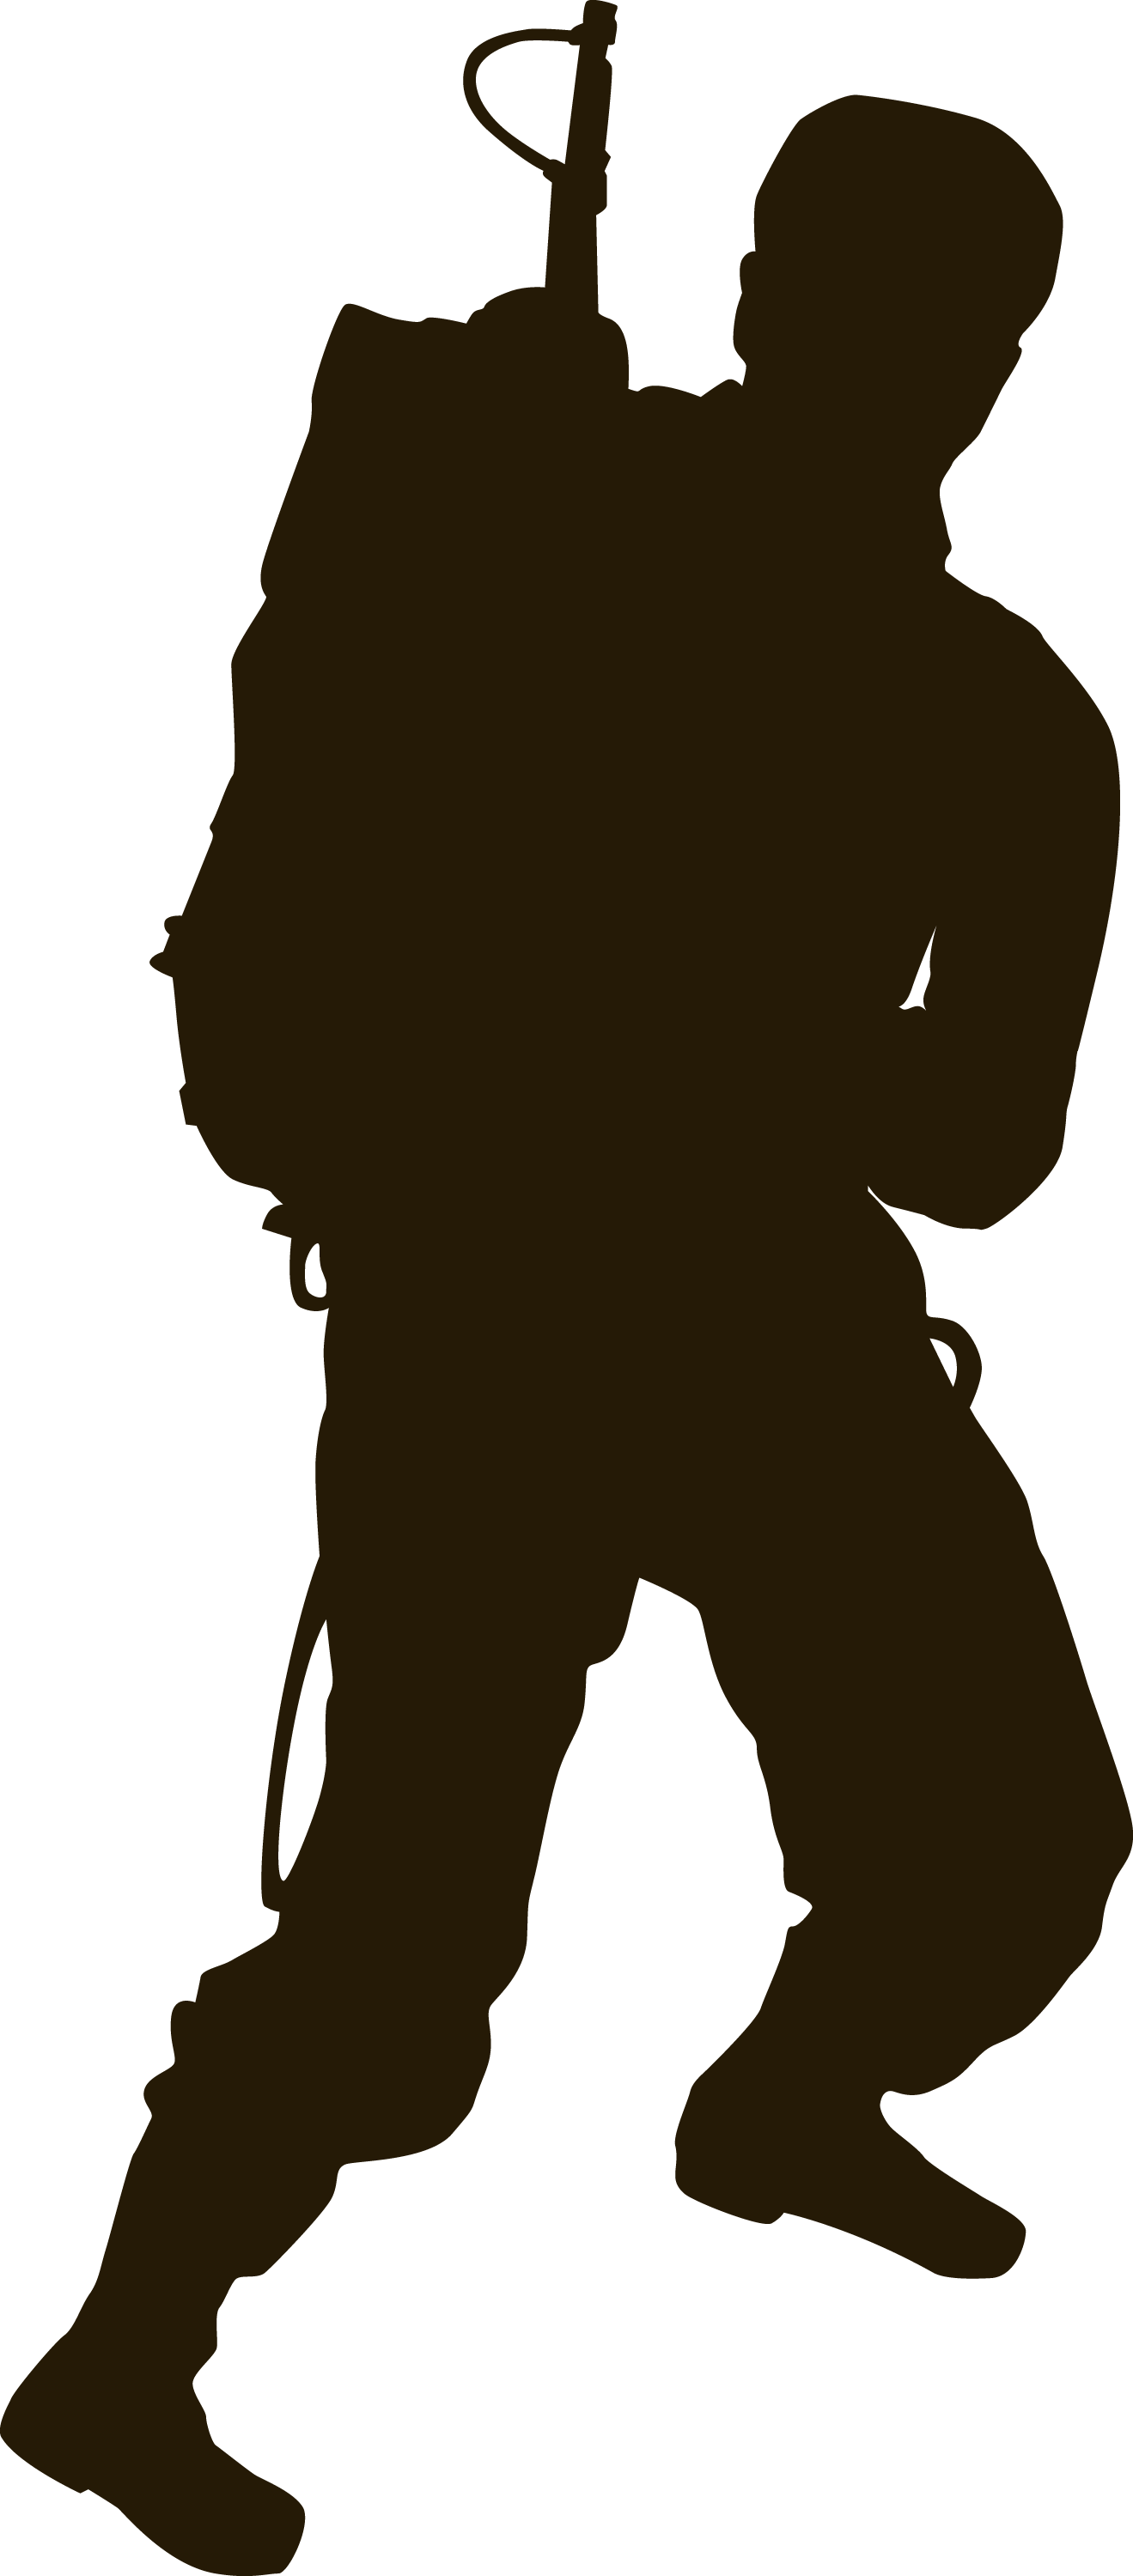 Save silhouette file as png. Image gb officialcreativeassestsgb gbgbofficialcreativeassestsgb